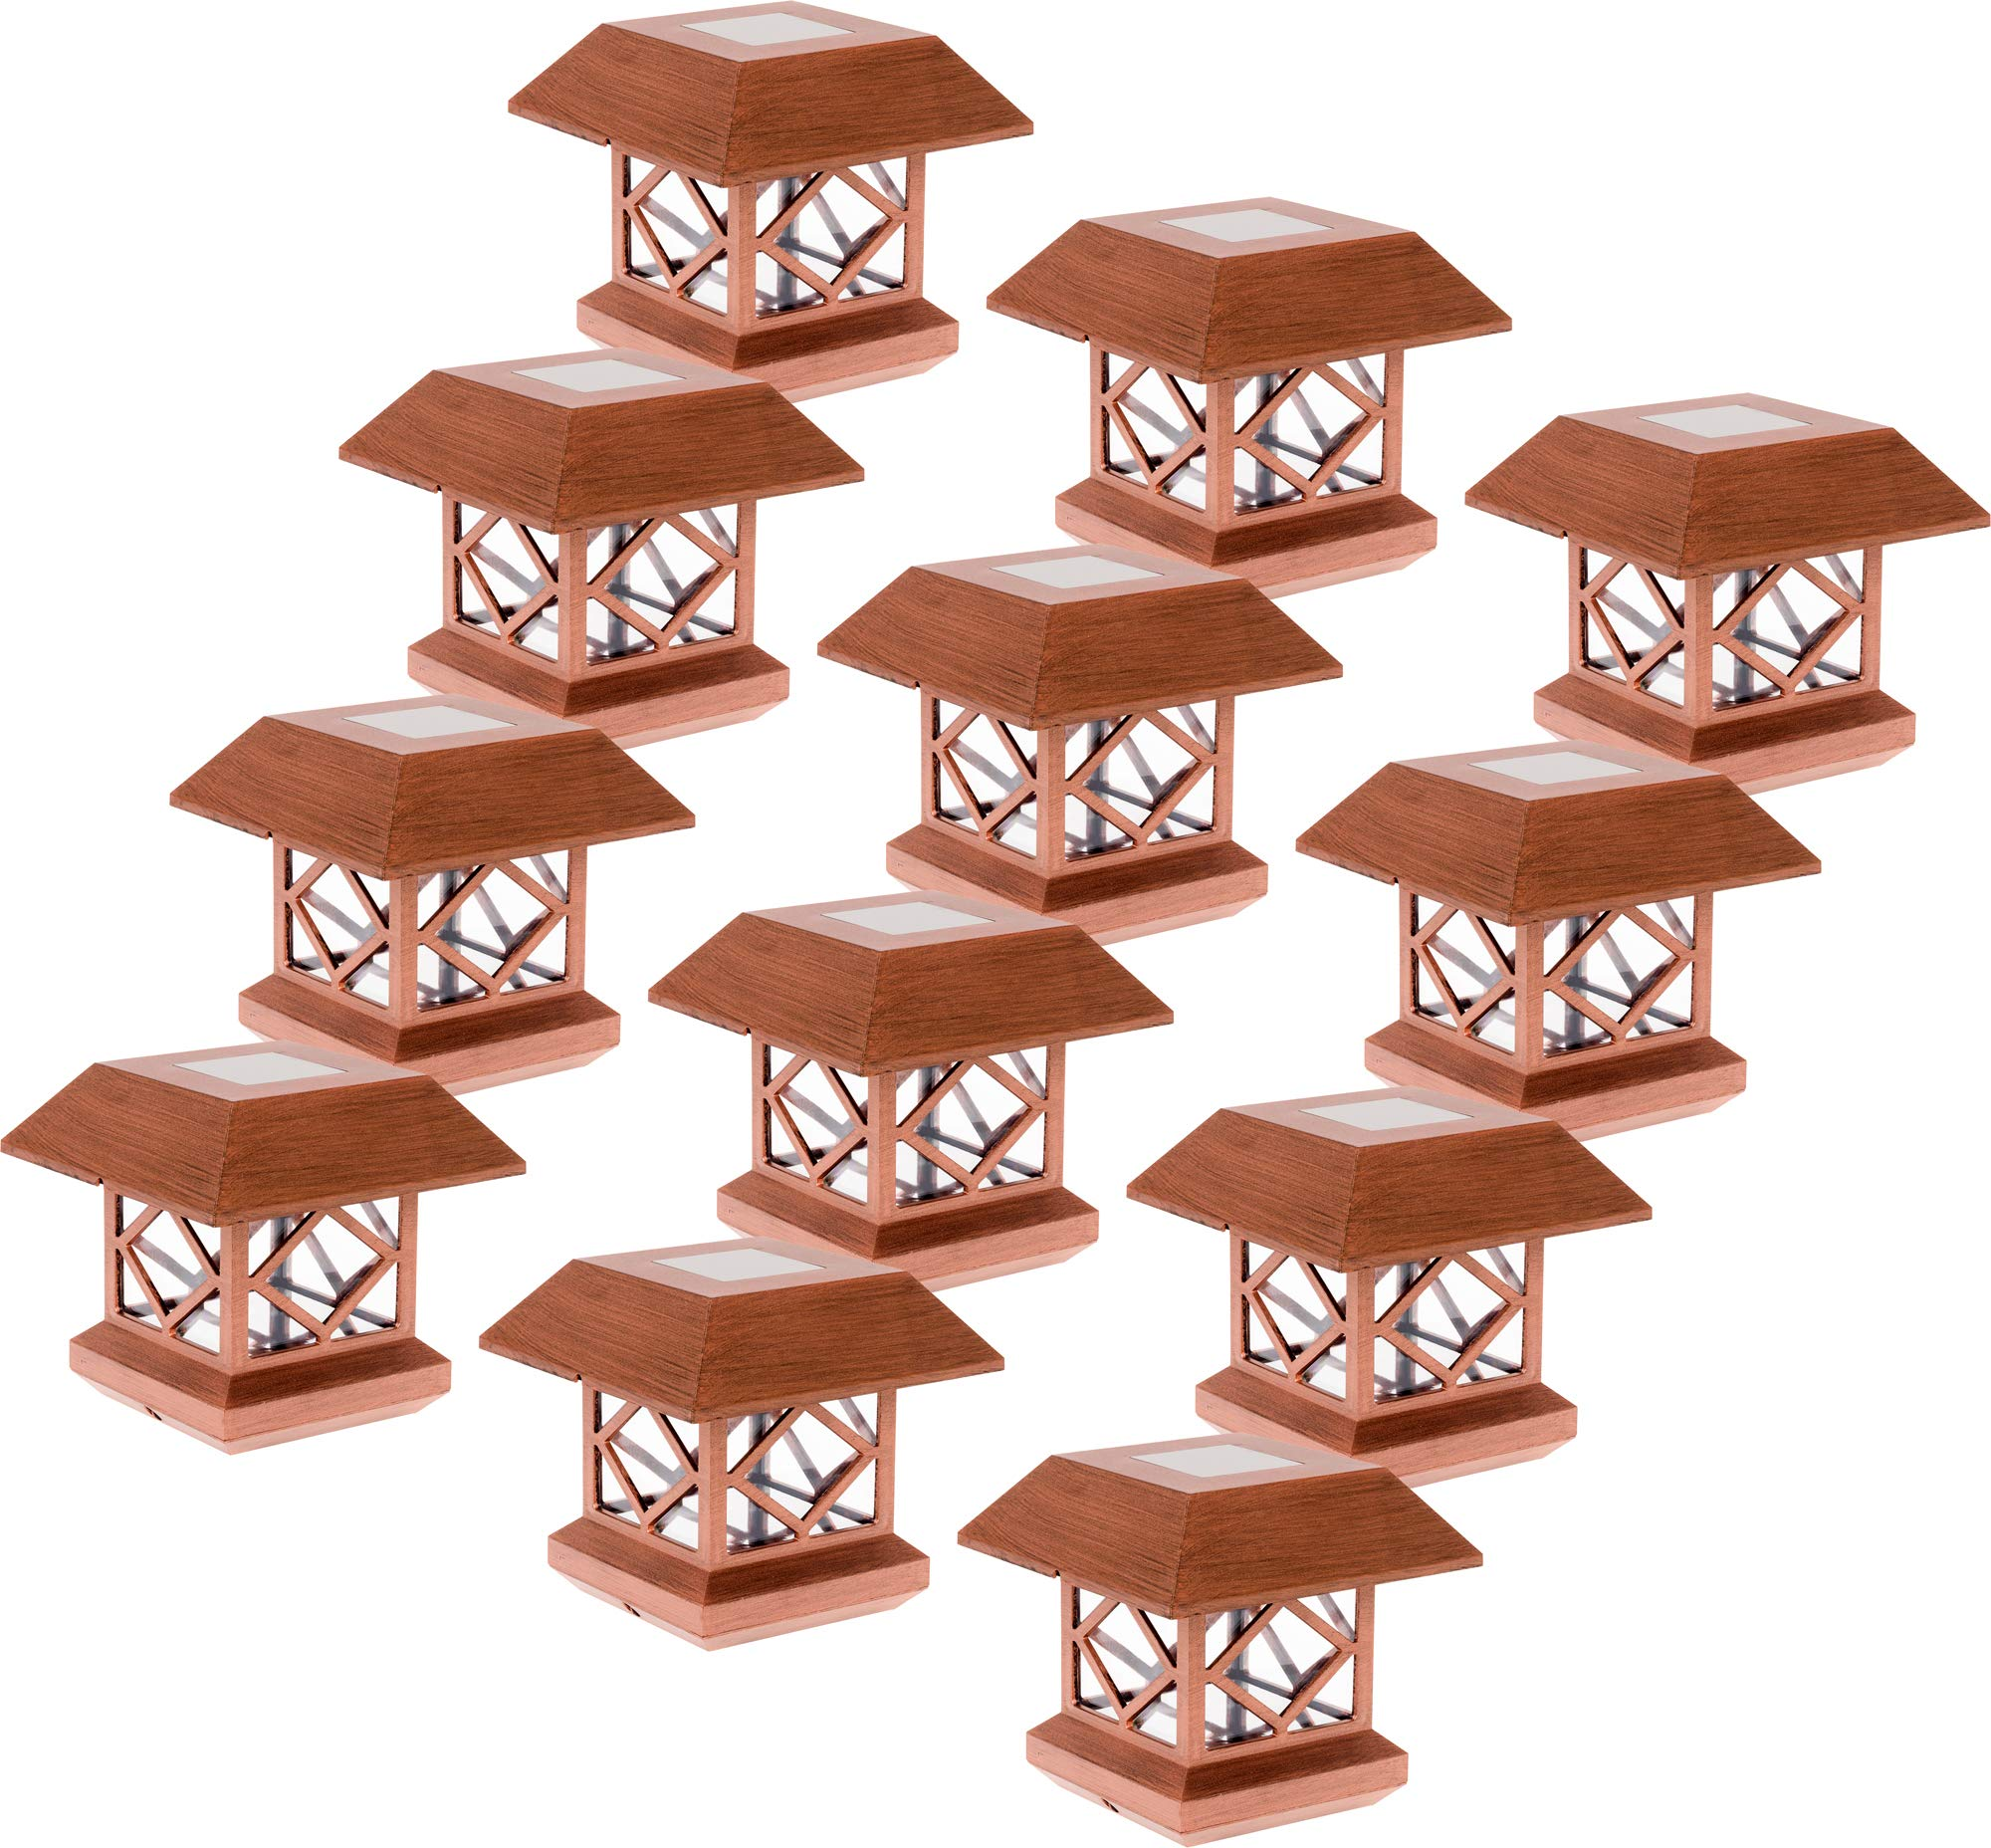 GreenLighting Outdoor Summit Solar Post Cap Light for 4x4 Wood Posts 12 Pack (Brushed Copper) by GreenLighting (Image #1)